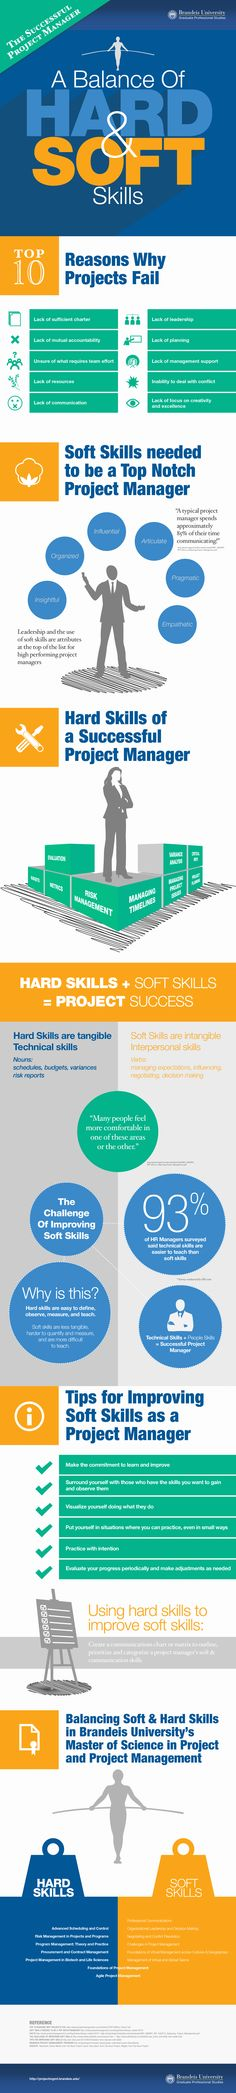 Infographic on the Skills of Successful Project Managers